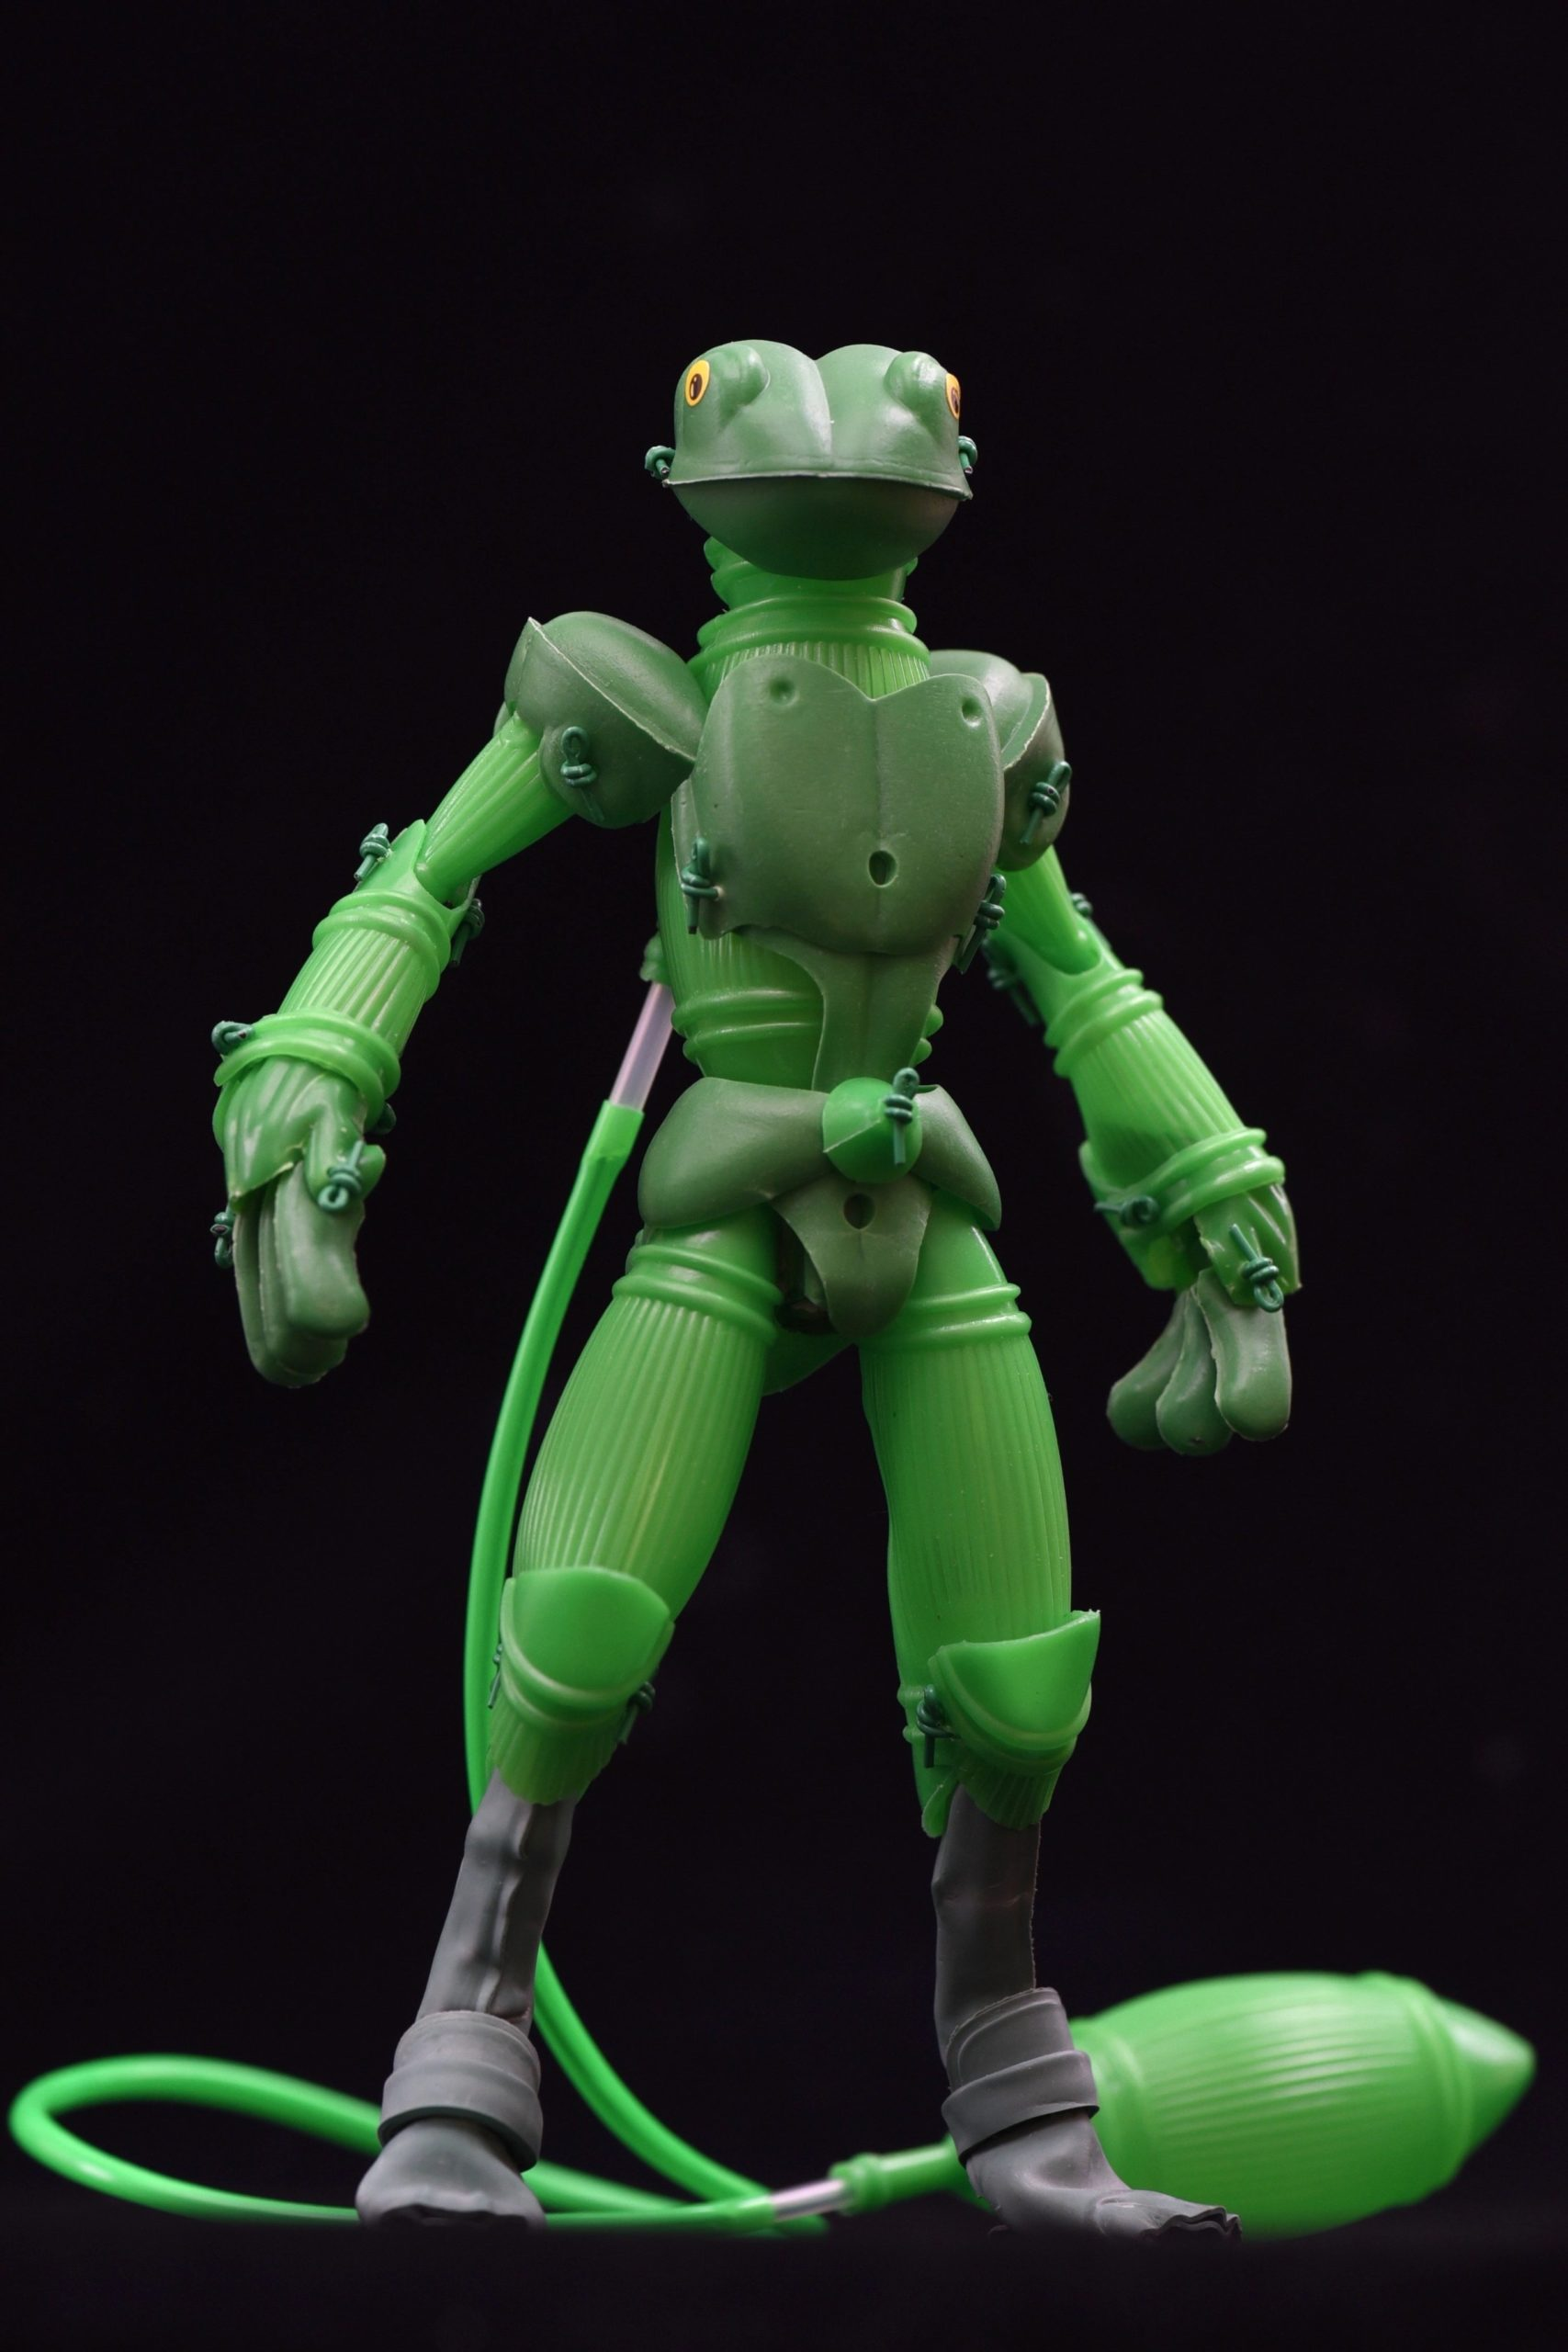 Inexpensive Toys Fashioned into Unique Action Figures by Artist Tomohiro Yasui